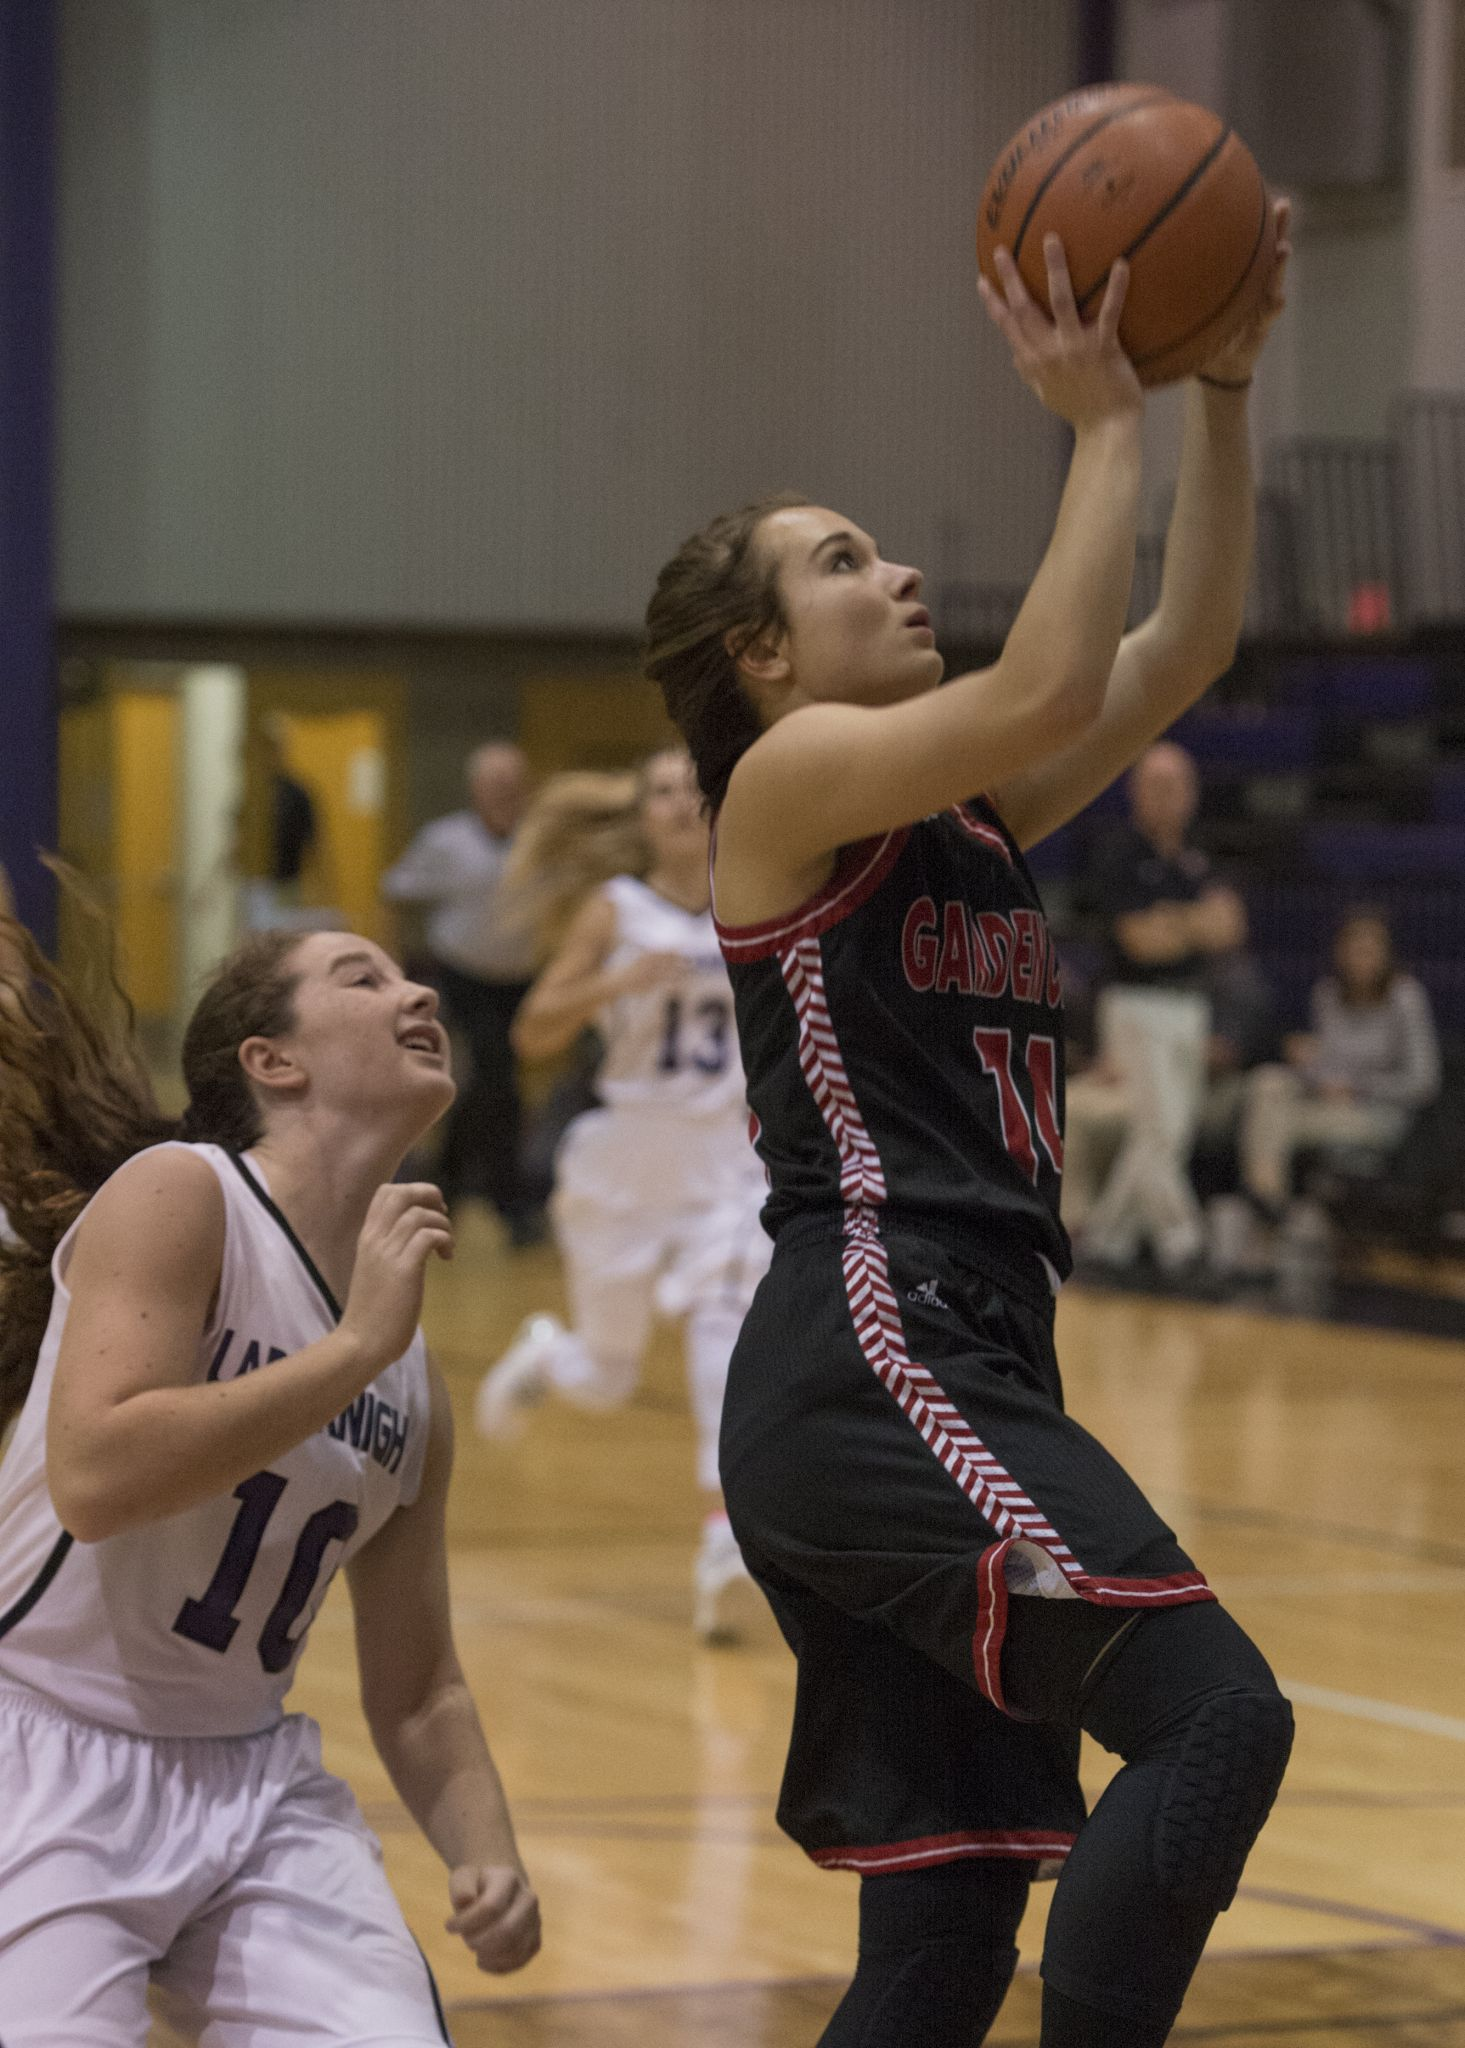 HS BASKETBALL: Roundup from area games on Feb. 7 - Midland Reporter ...